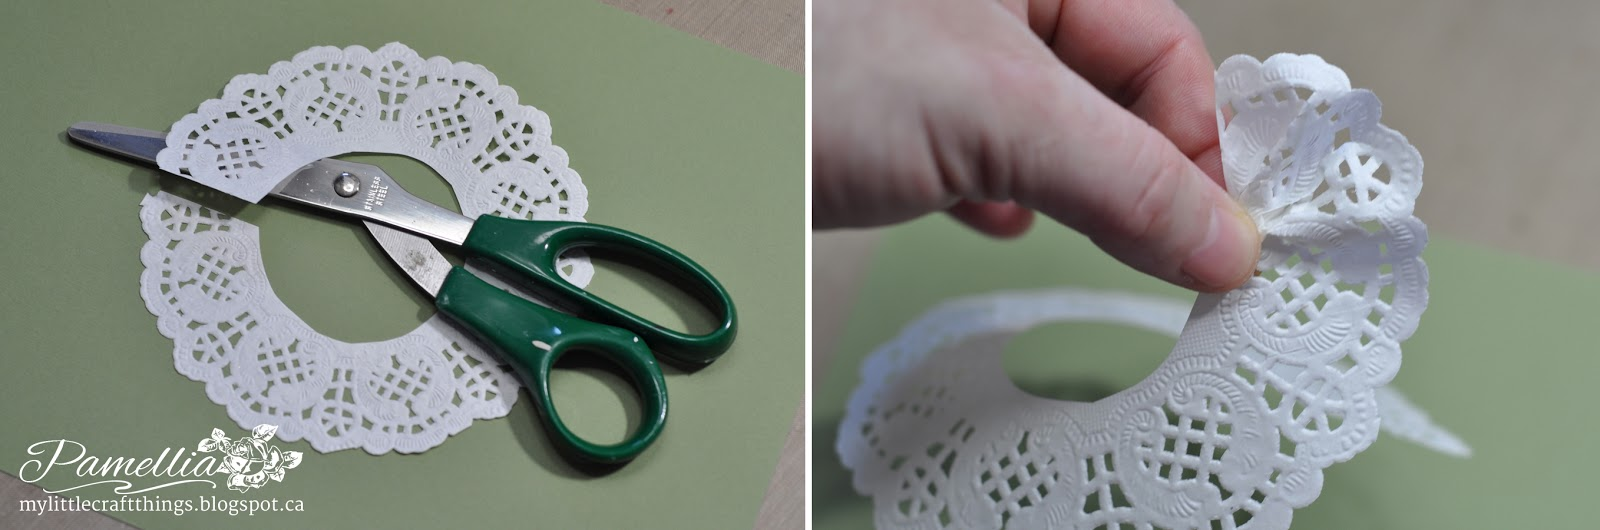 My Little Craft Things Doily Flower Tutorial A Beautiful Gift